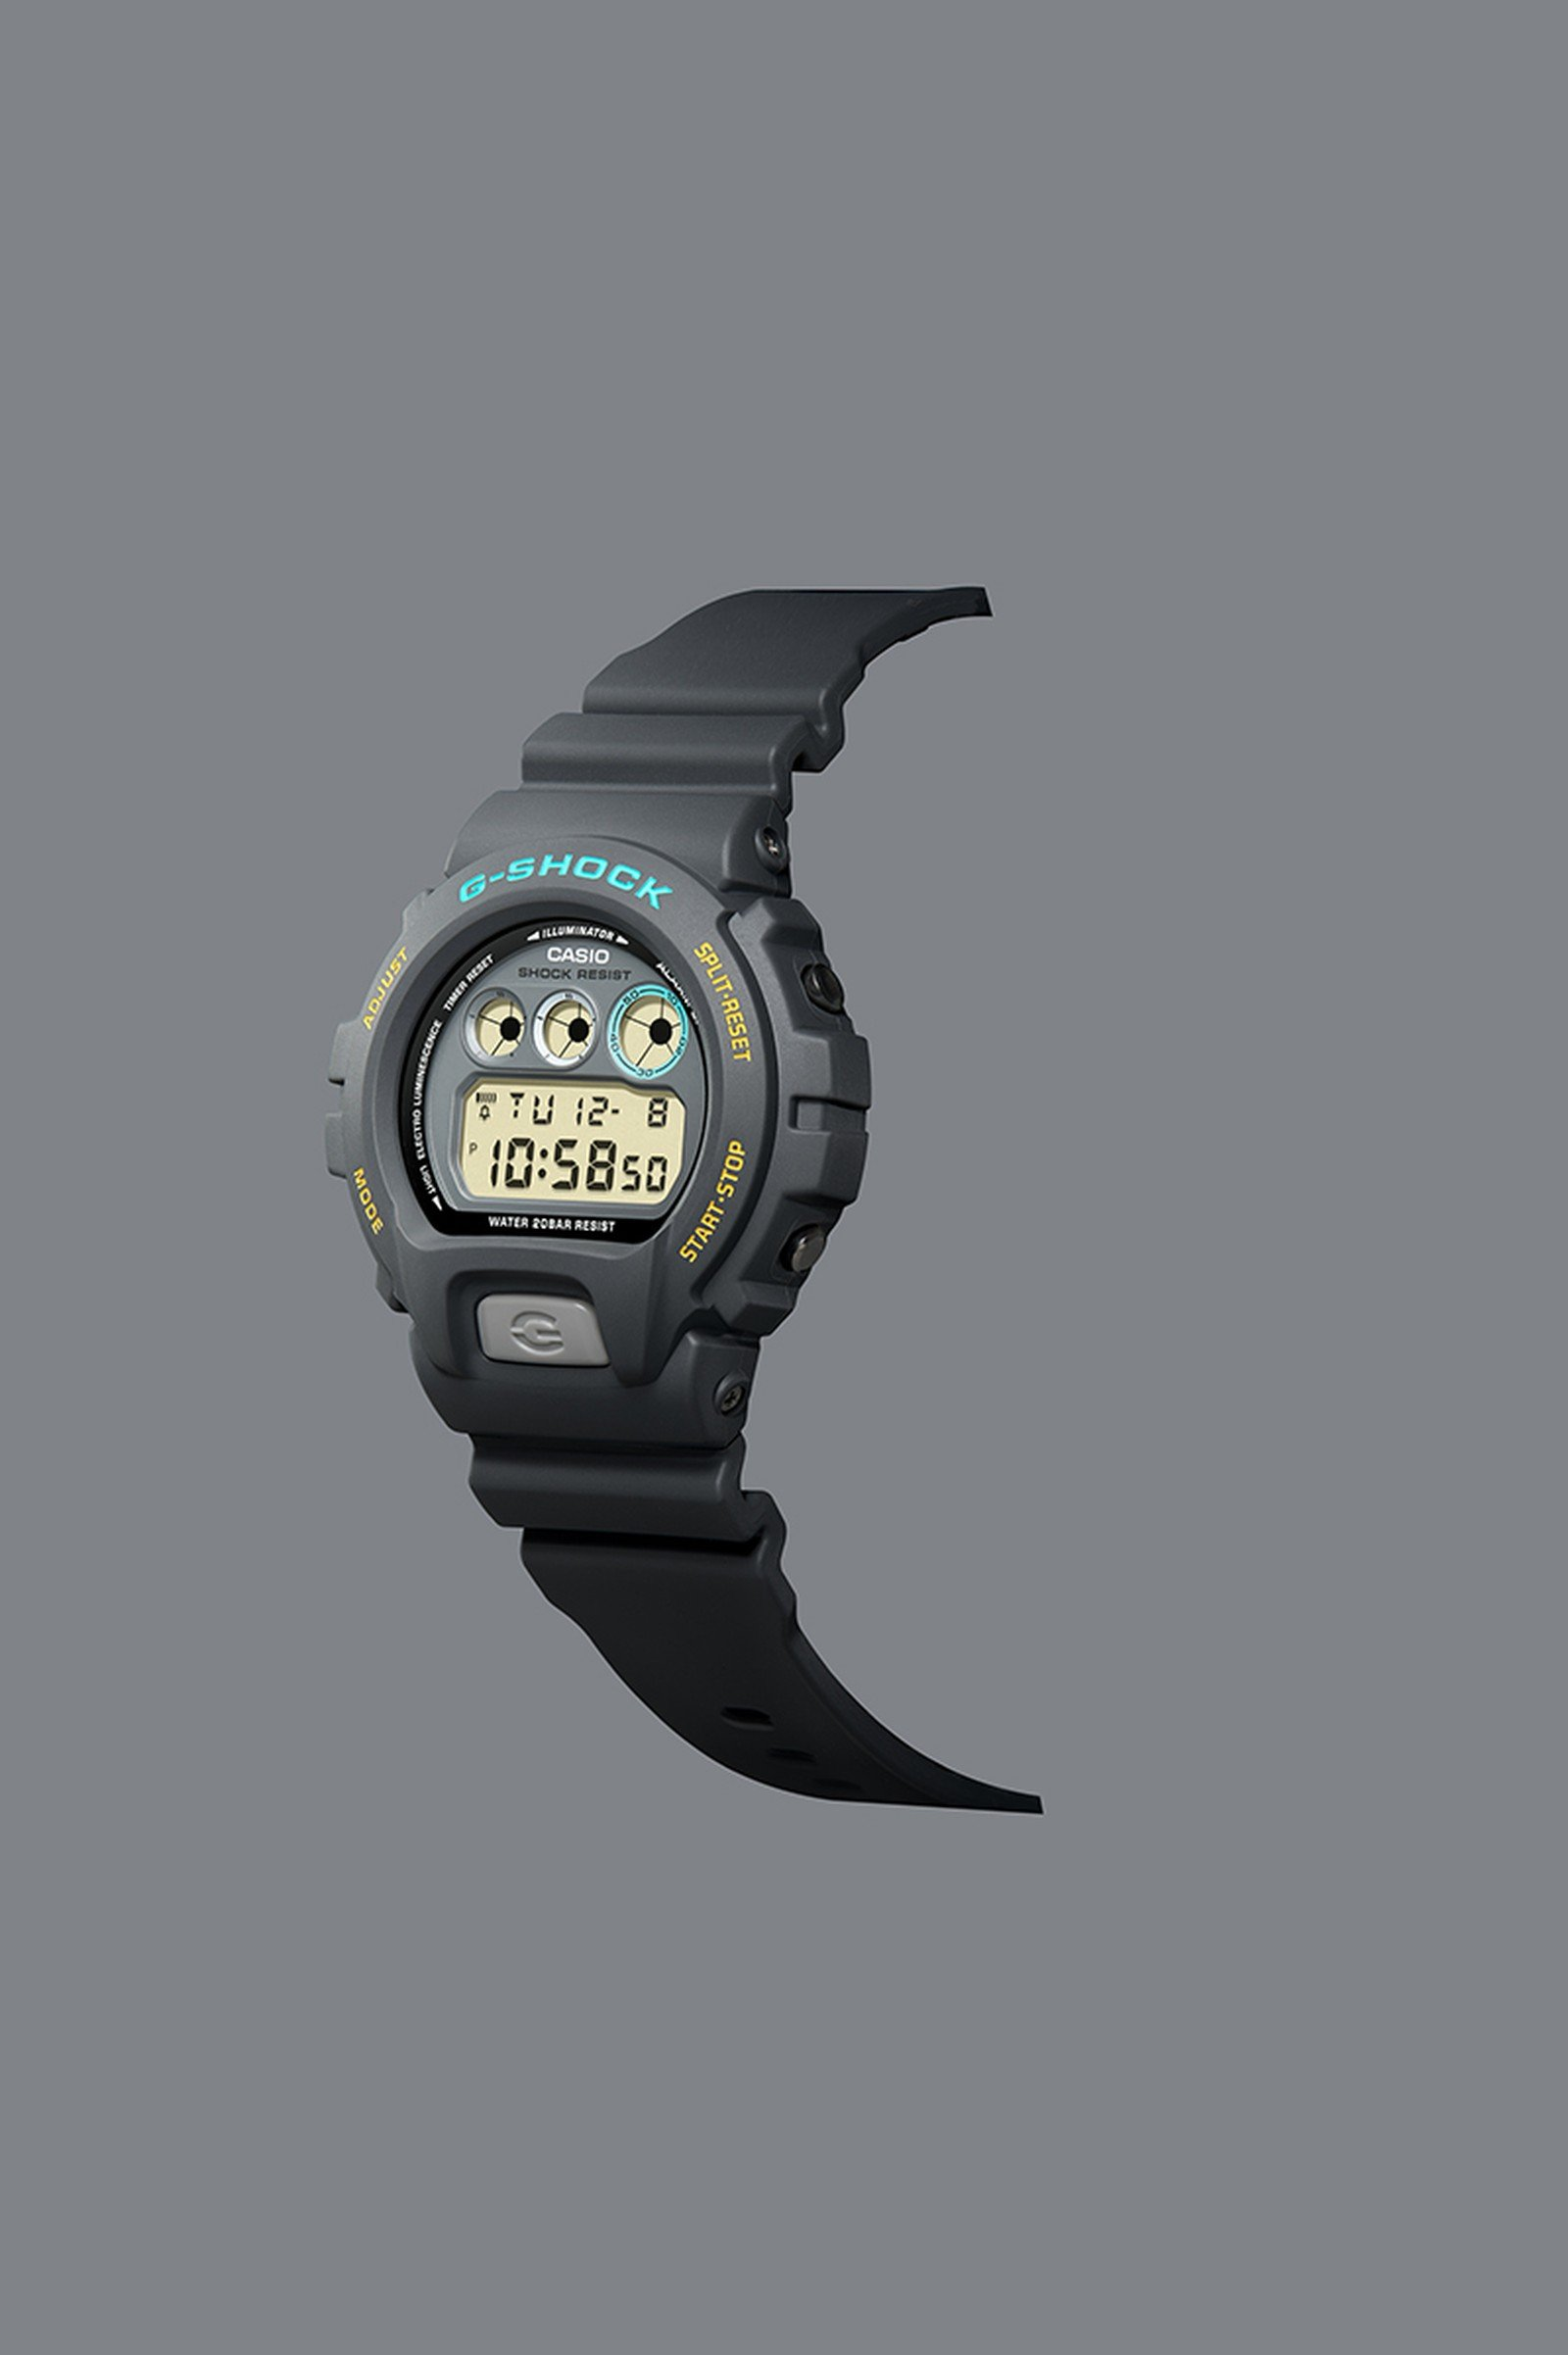 First Look at John Mayer X Casio G-SHOCK Collab